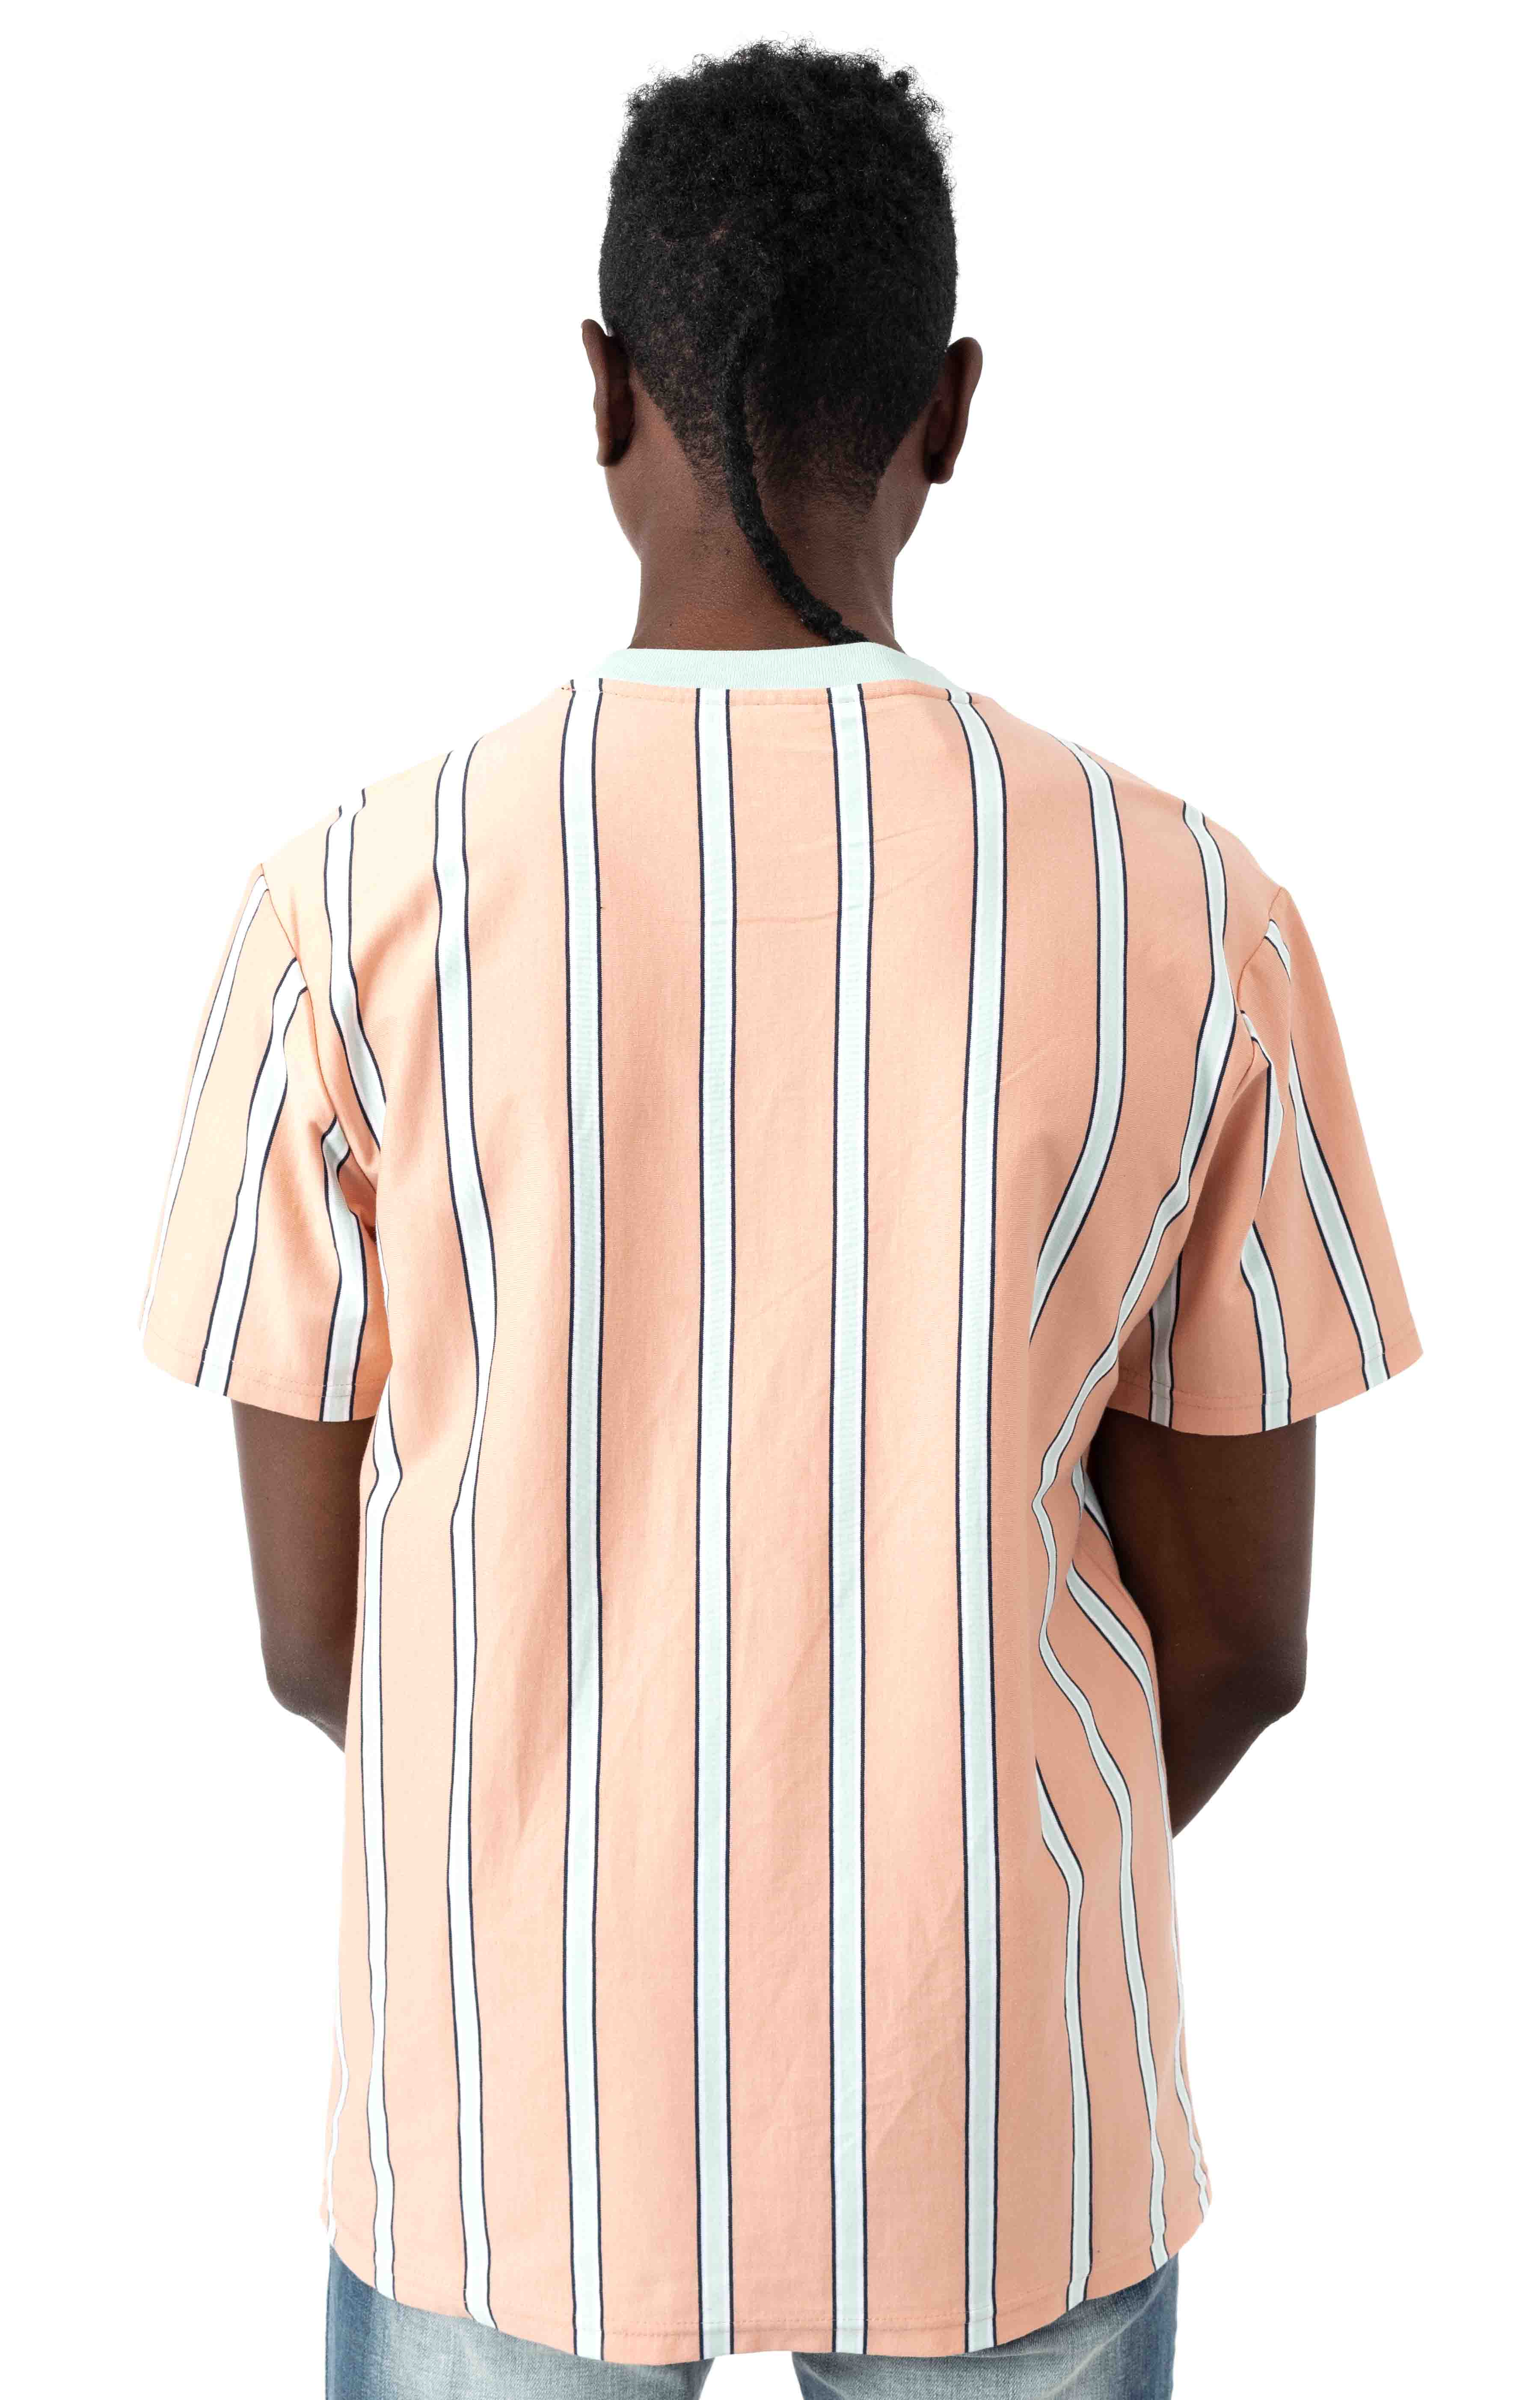 Jerome YDS Knit Top Shirt - Coral Pink  3